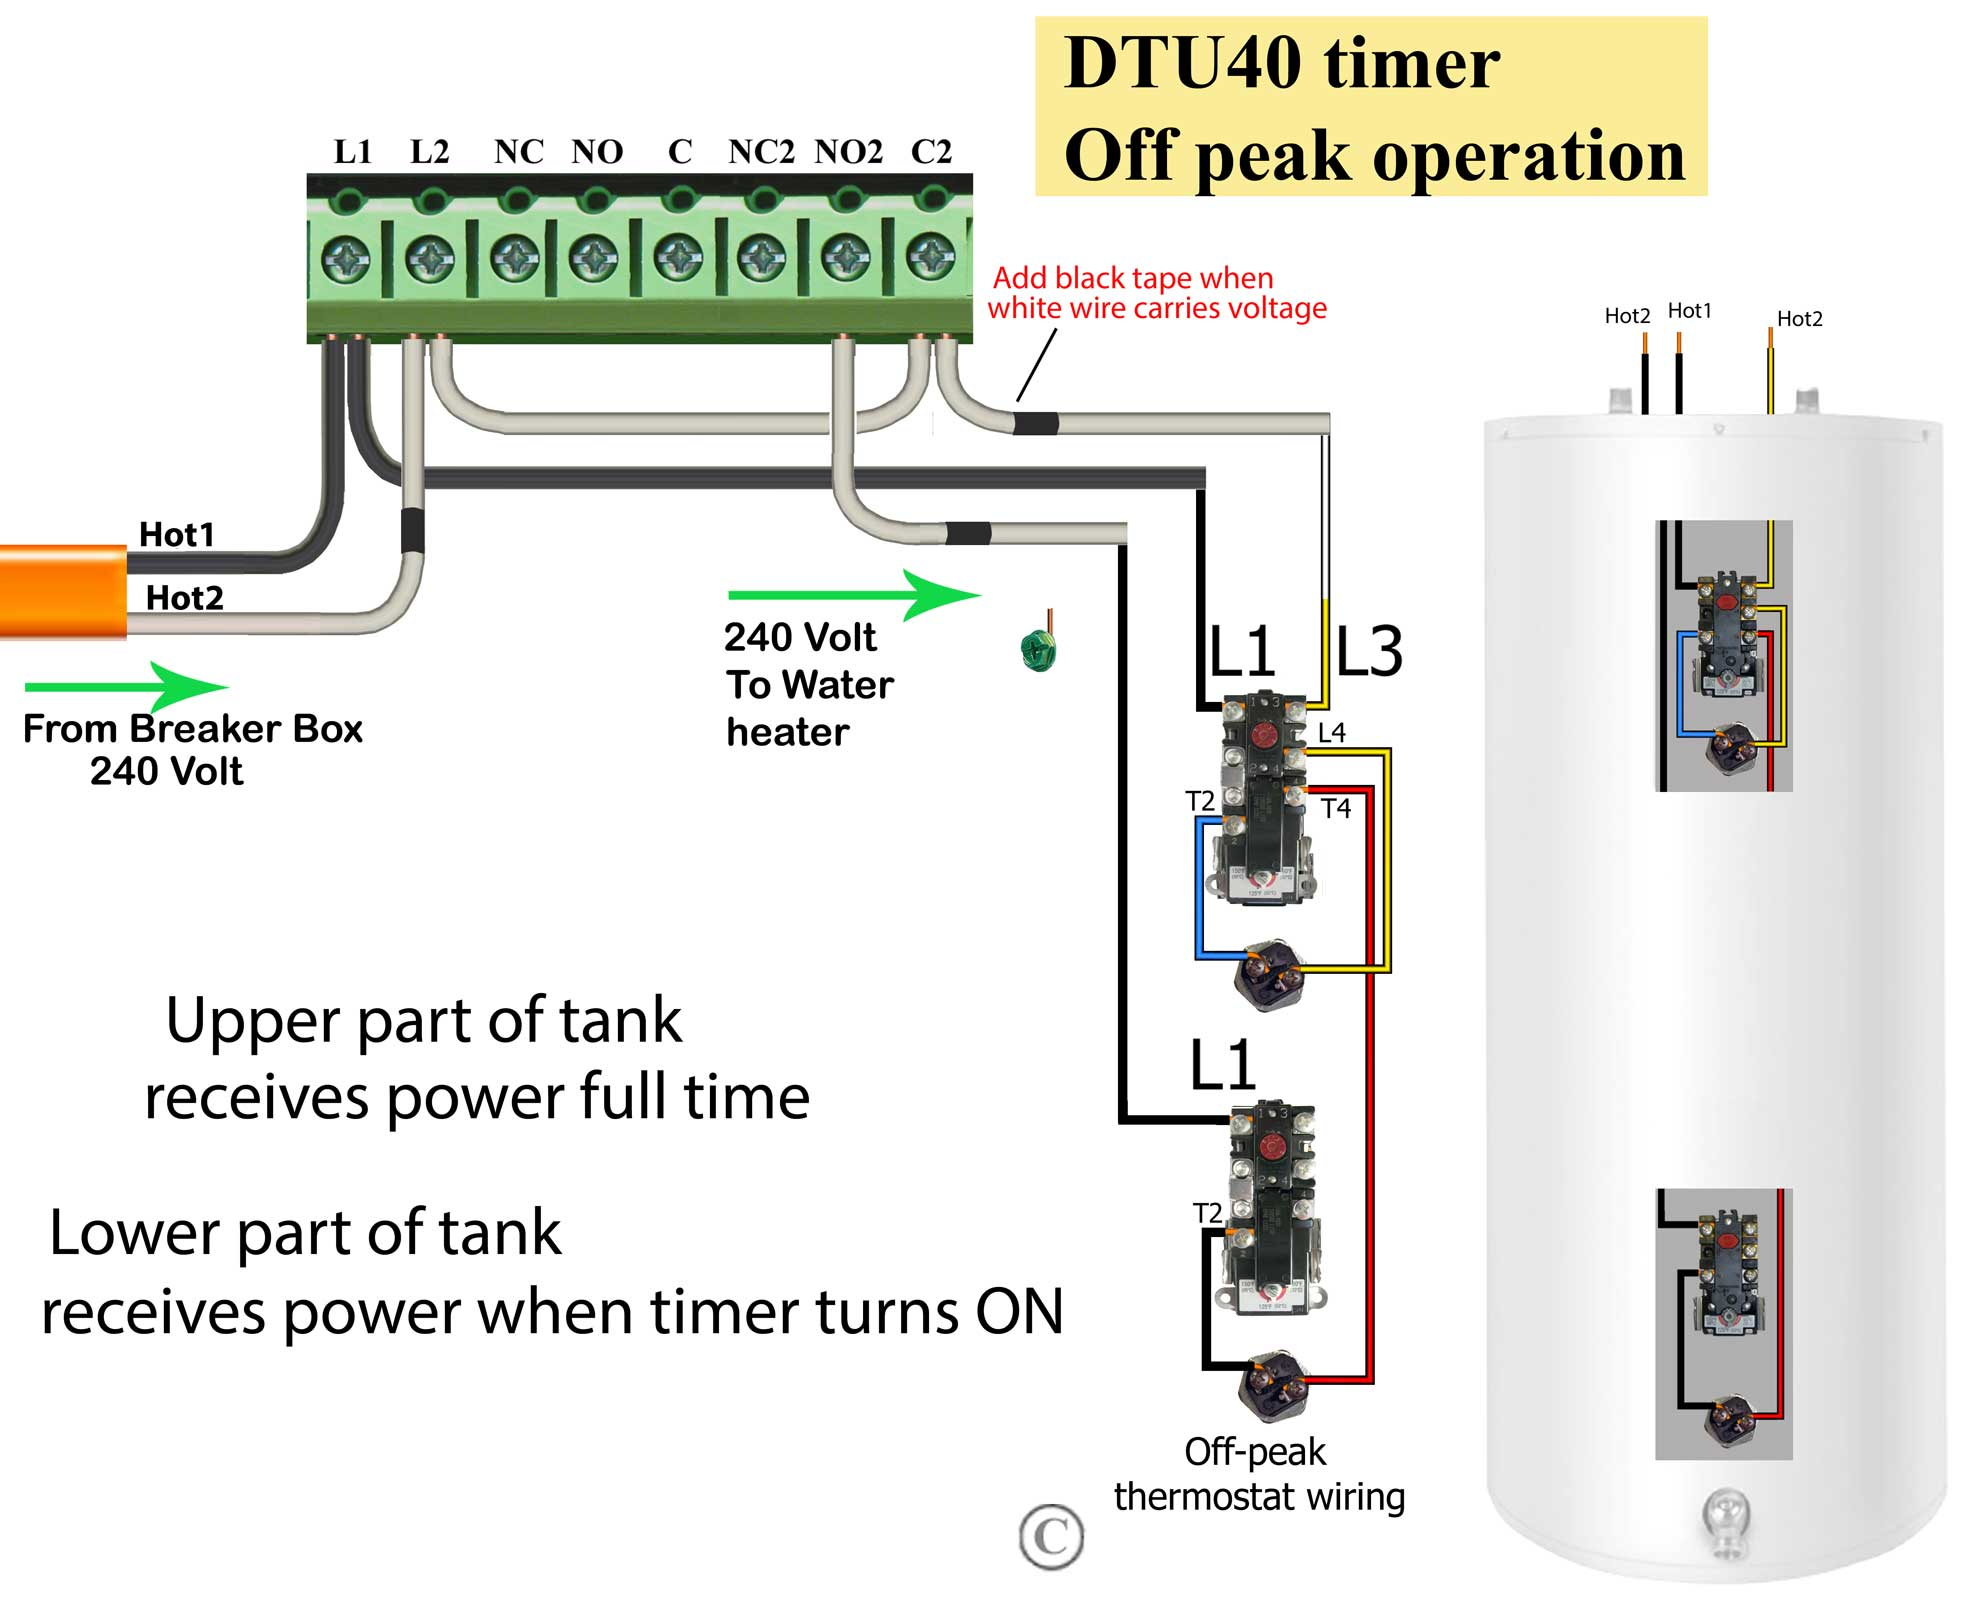 Tork DTU 240V circuit off peak how to wire water heater thermostat wiring diagram for a hot water heater at gsmportal.co